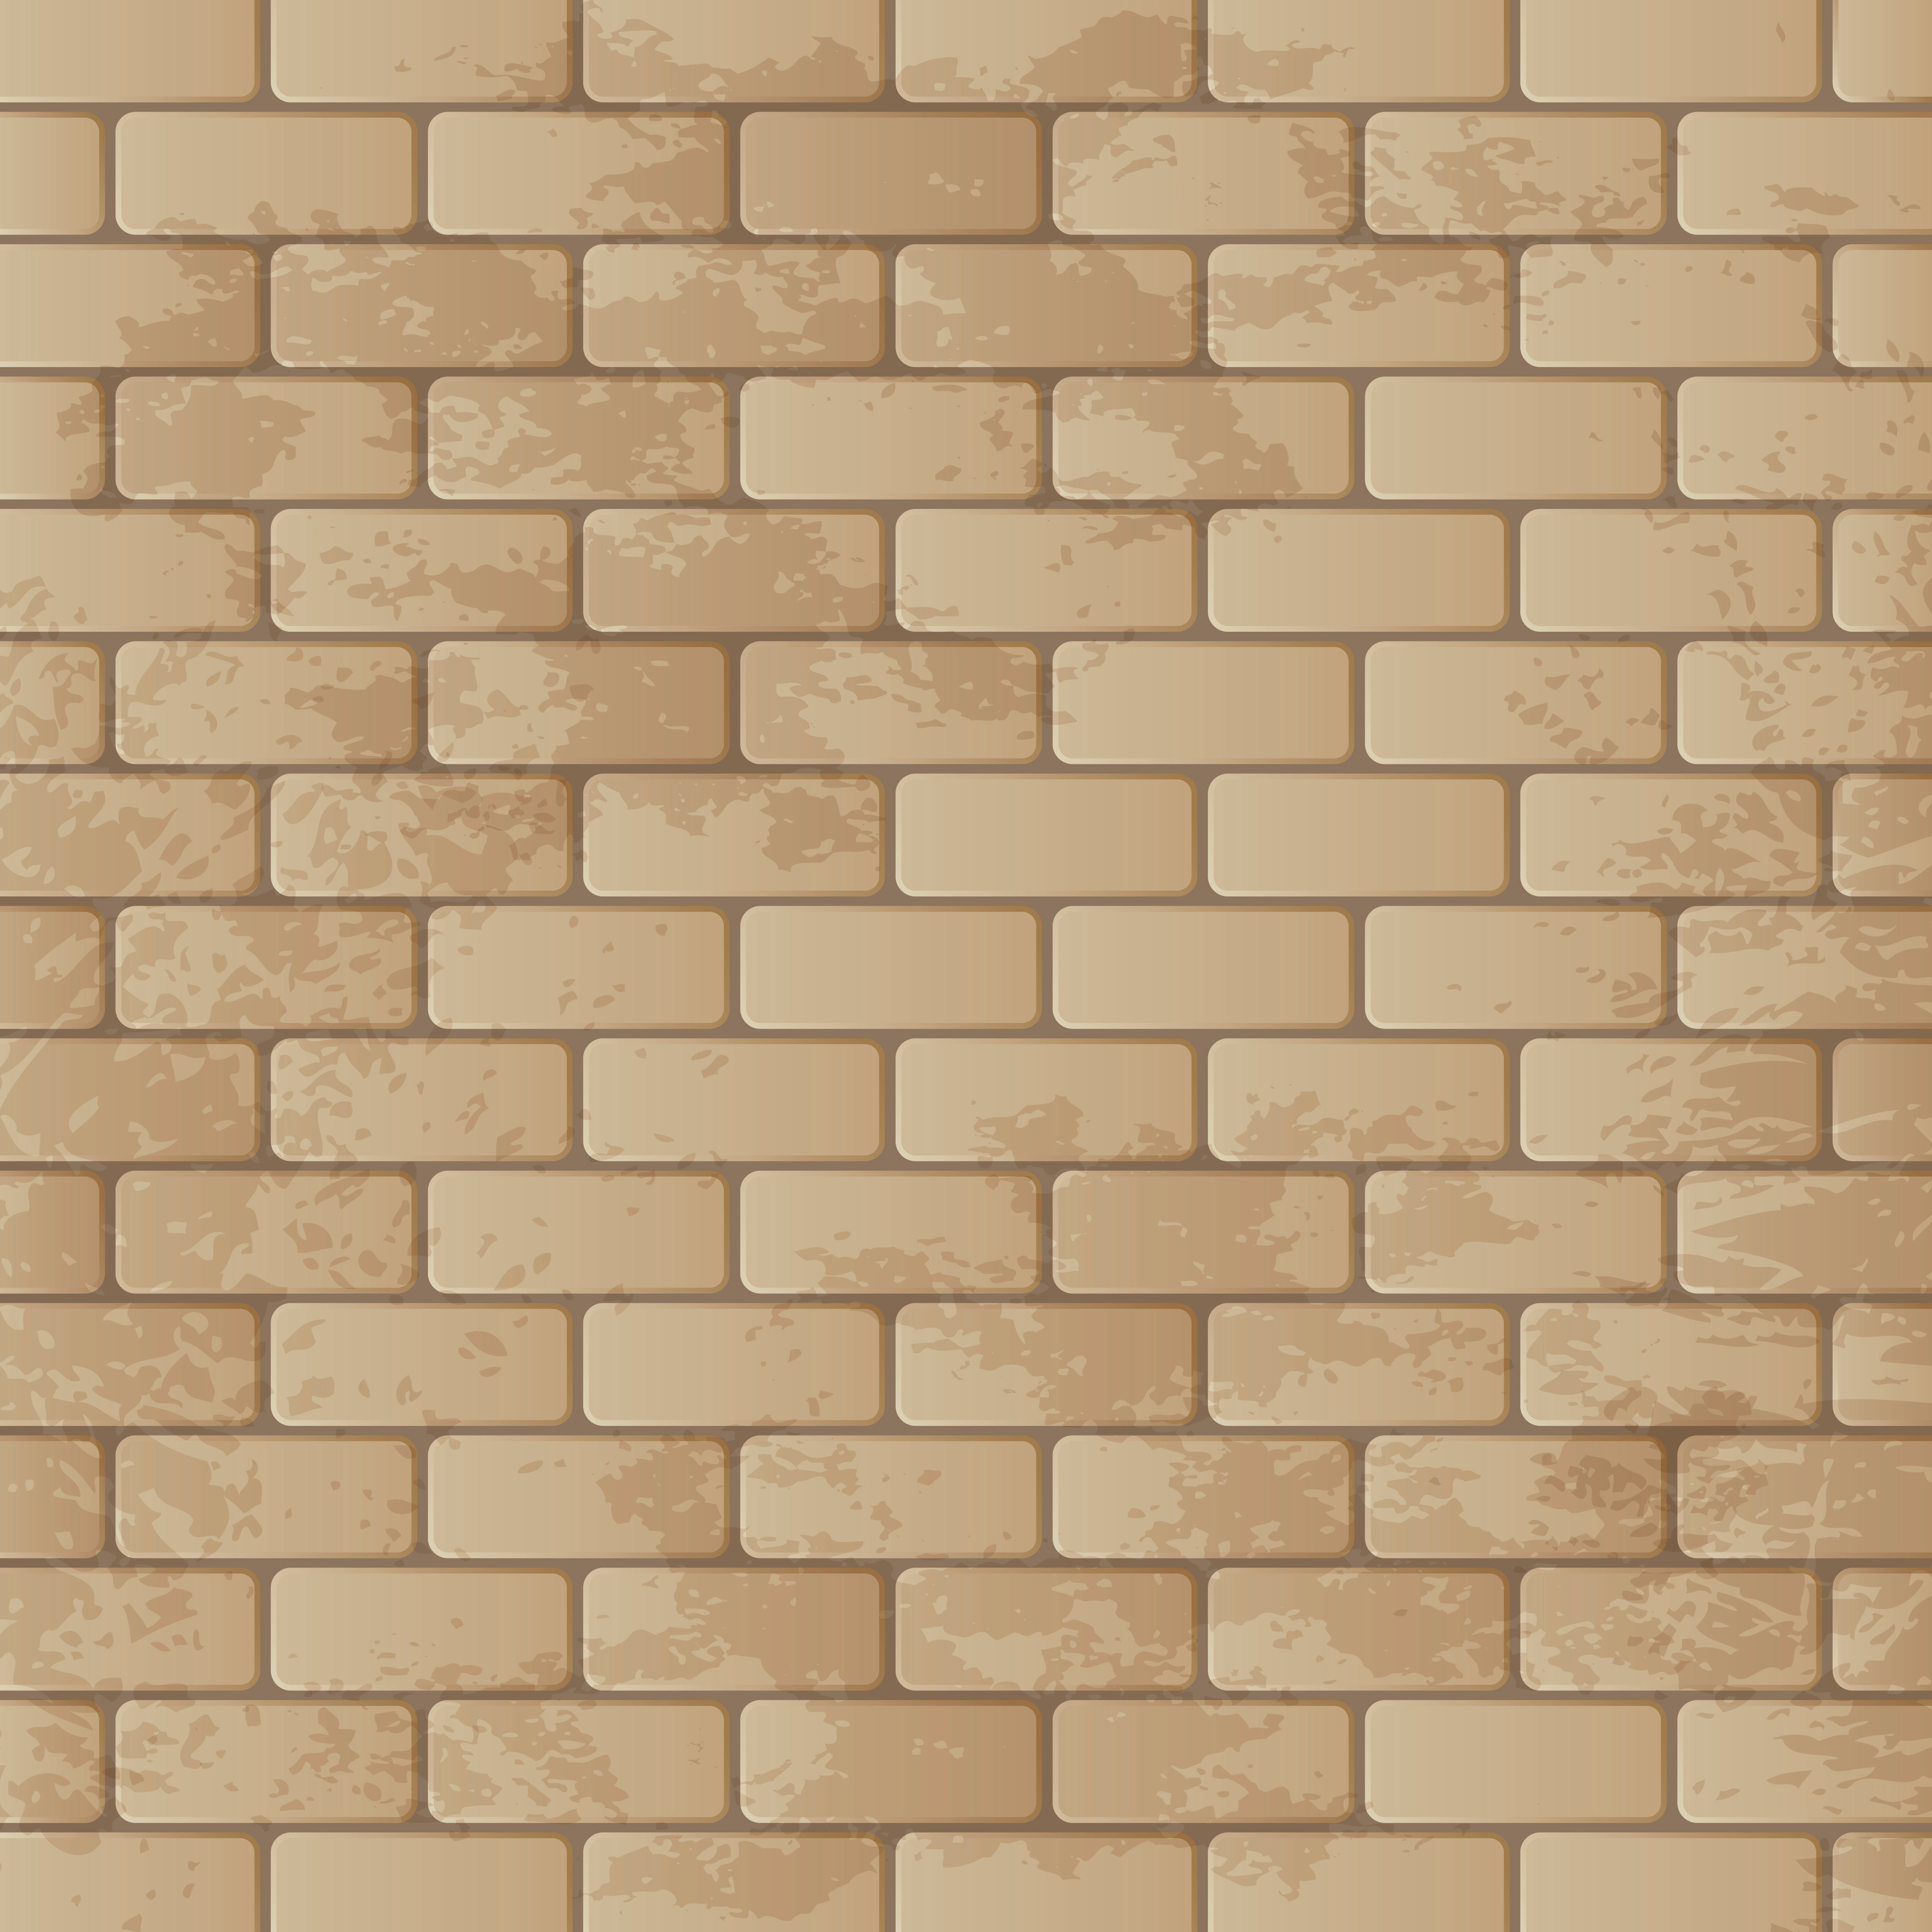 Tiles Background | Gallery Yopriceville - High-Quality Images and Transparent PNG Free Clipart